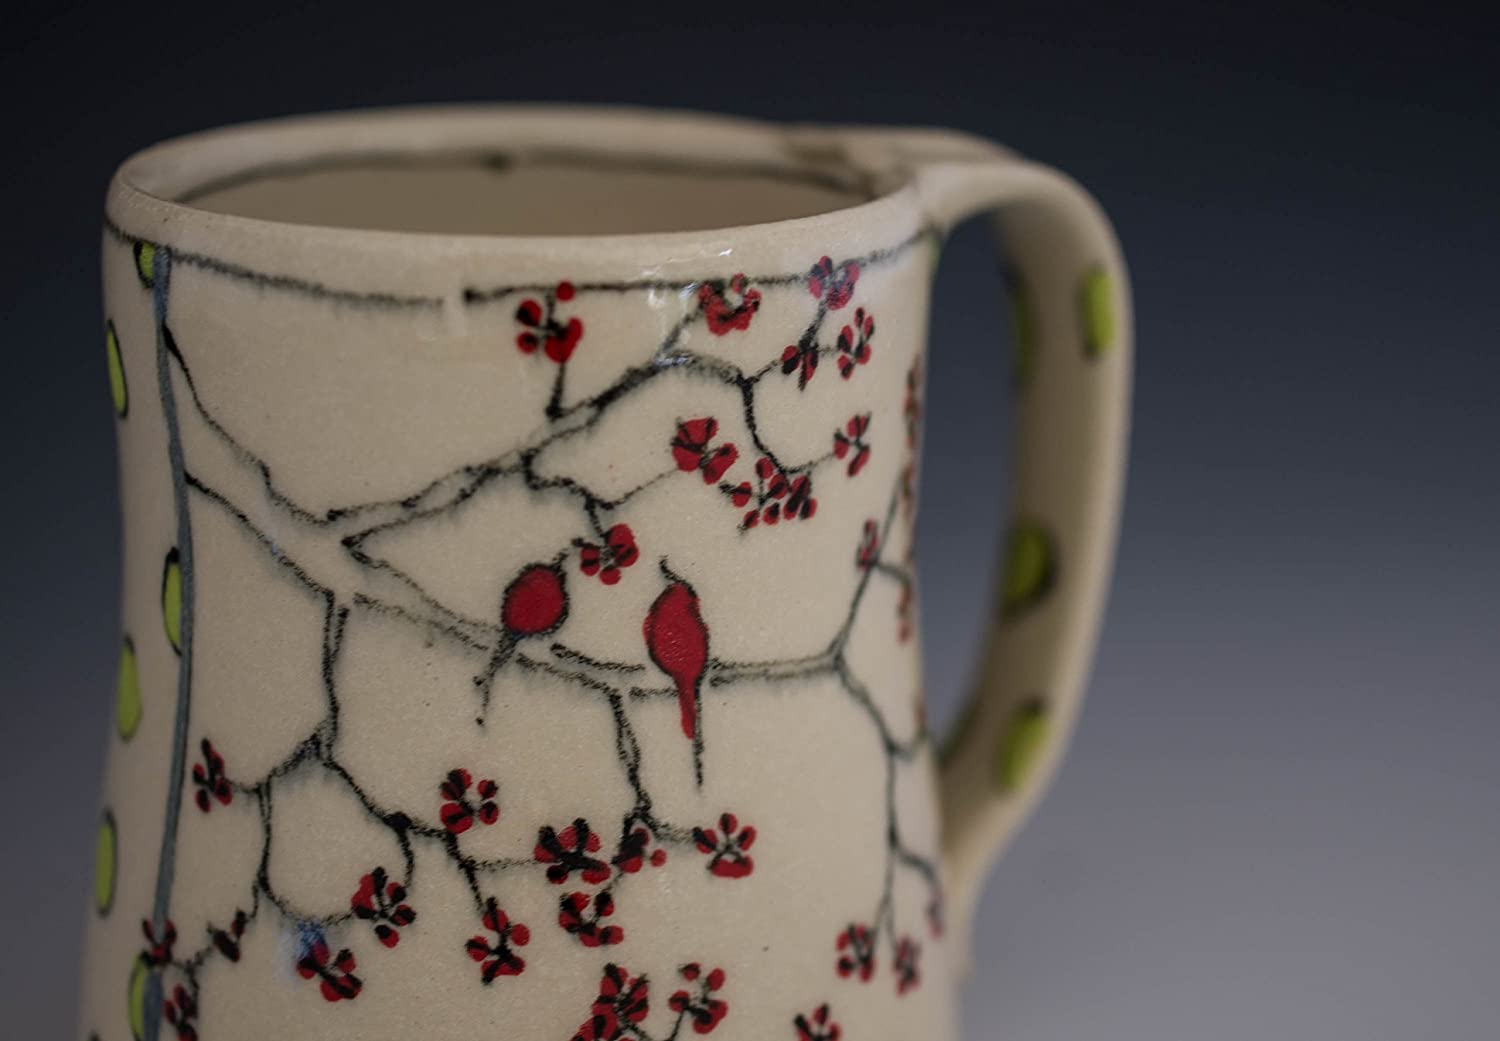 Mug SEAL limited product Over item handling ☆ Cherry Blossoms Birds and